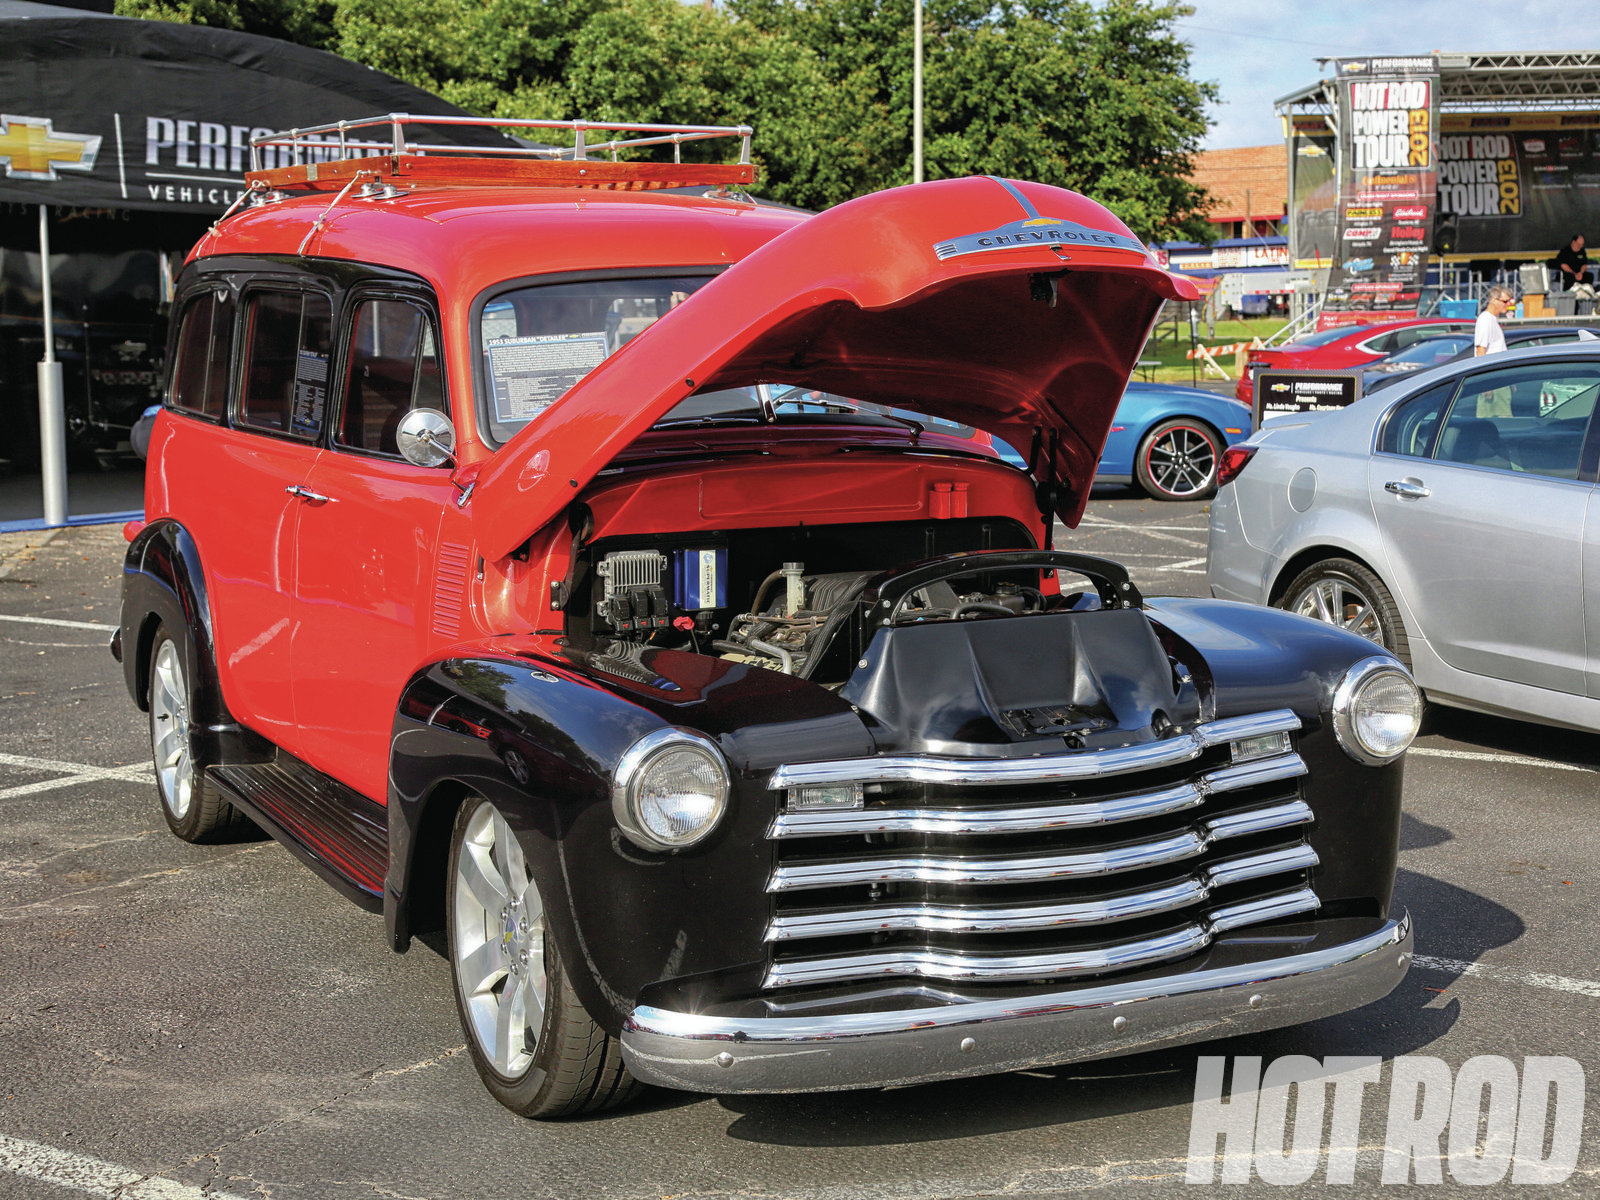 This 1953 Suburban was built in 2010 to celebrate 75 years of the Suburban; it was also at the '11 Power Tour® and is powered by a supercharged LSX 376 crate engine. The body was widened 2 inches to fit over the chassis of a Chevy TrailBlazer.